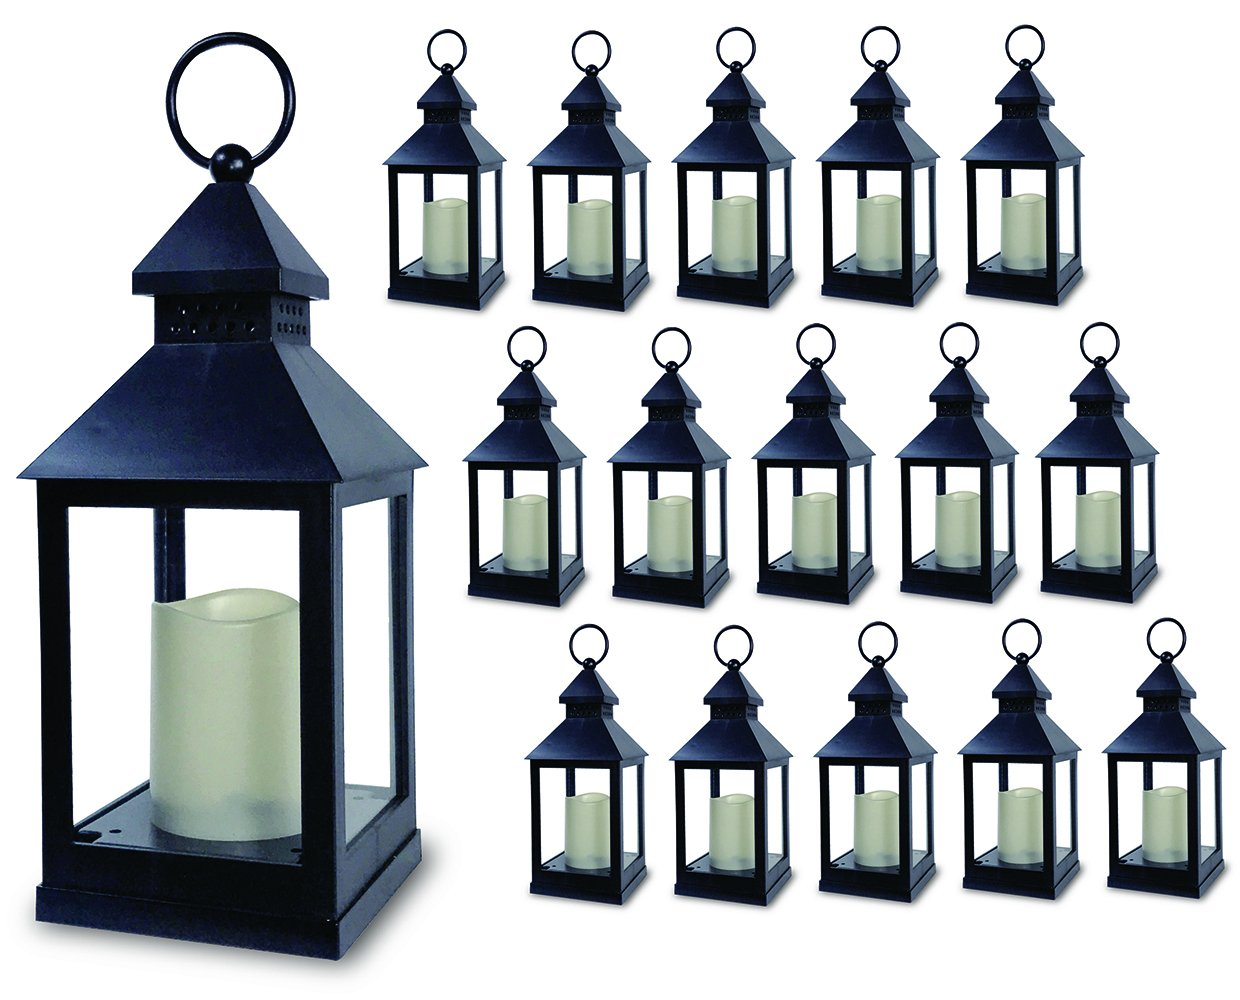 At just over 9 inches tall, you can get 16 of these lanterns for $135! If you're on a really tight budget for centerpieces, these would be pretty sparse. These would be great for an aisle, though!